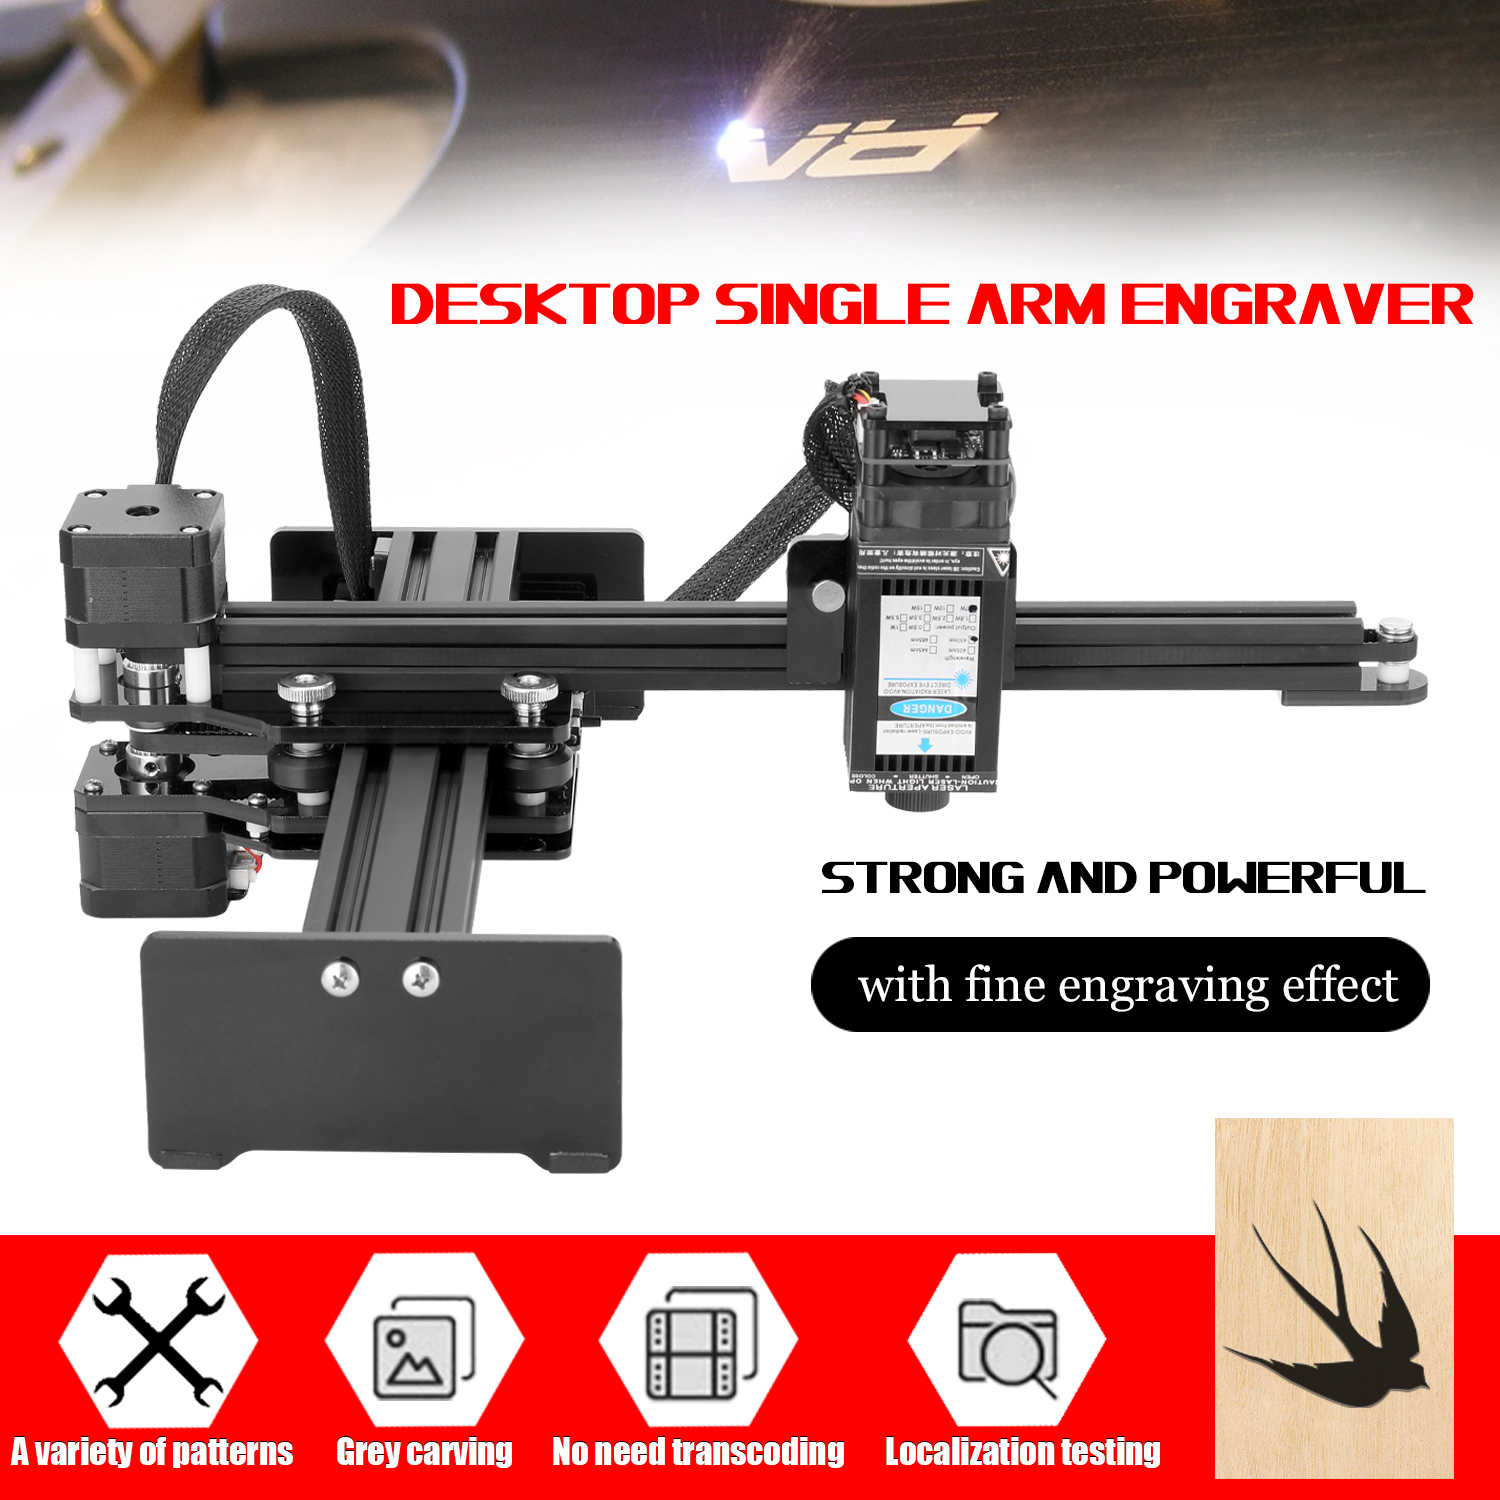 7W Small Laser Engraving Machine Desktop Single Arm Engraver Portable DIY Engraving Carving Machine Mini Carver With U Disk